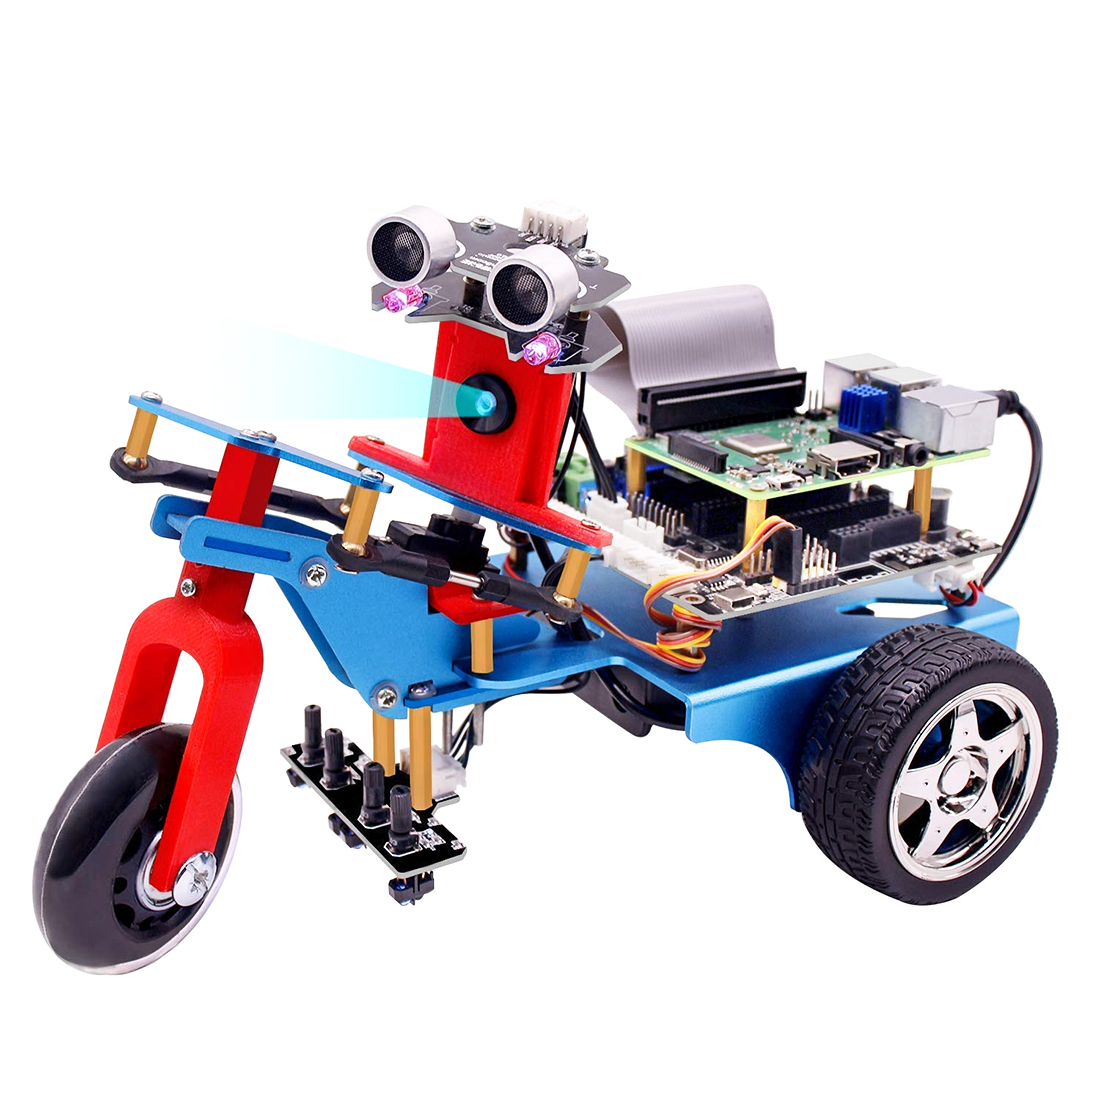 Modiker Three-wheeled Car Smart Robot Kit Programmable Learning Toy With HD Camera DIY Robot Kit With 1/2/4G Raspberry 4B